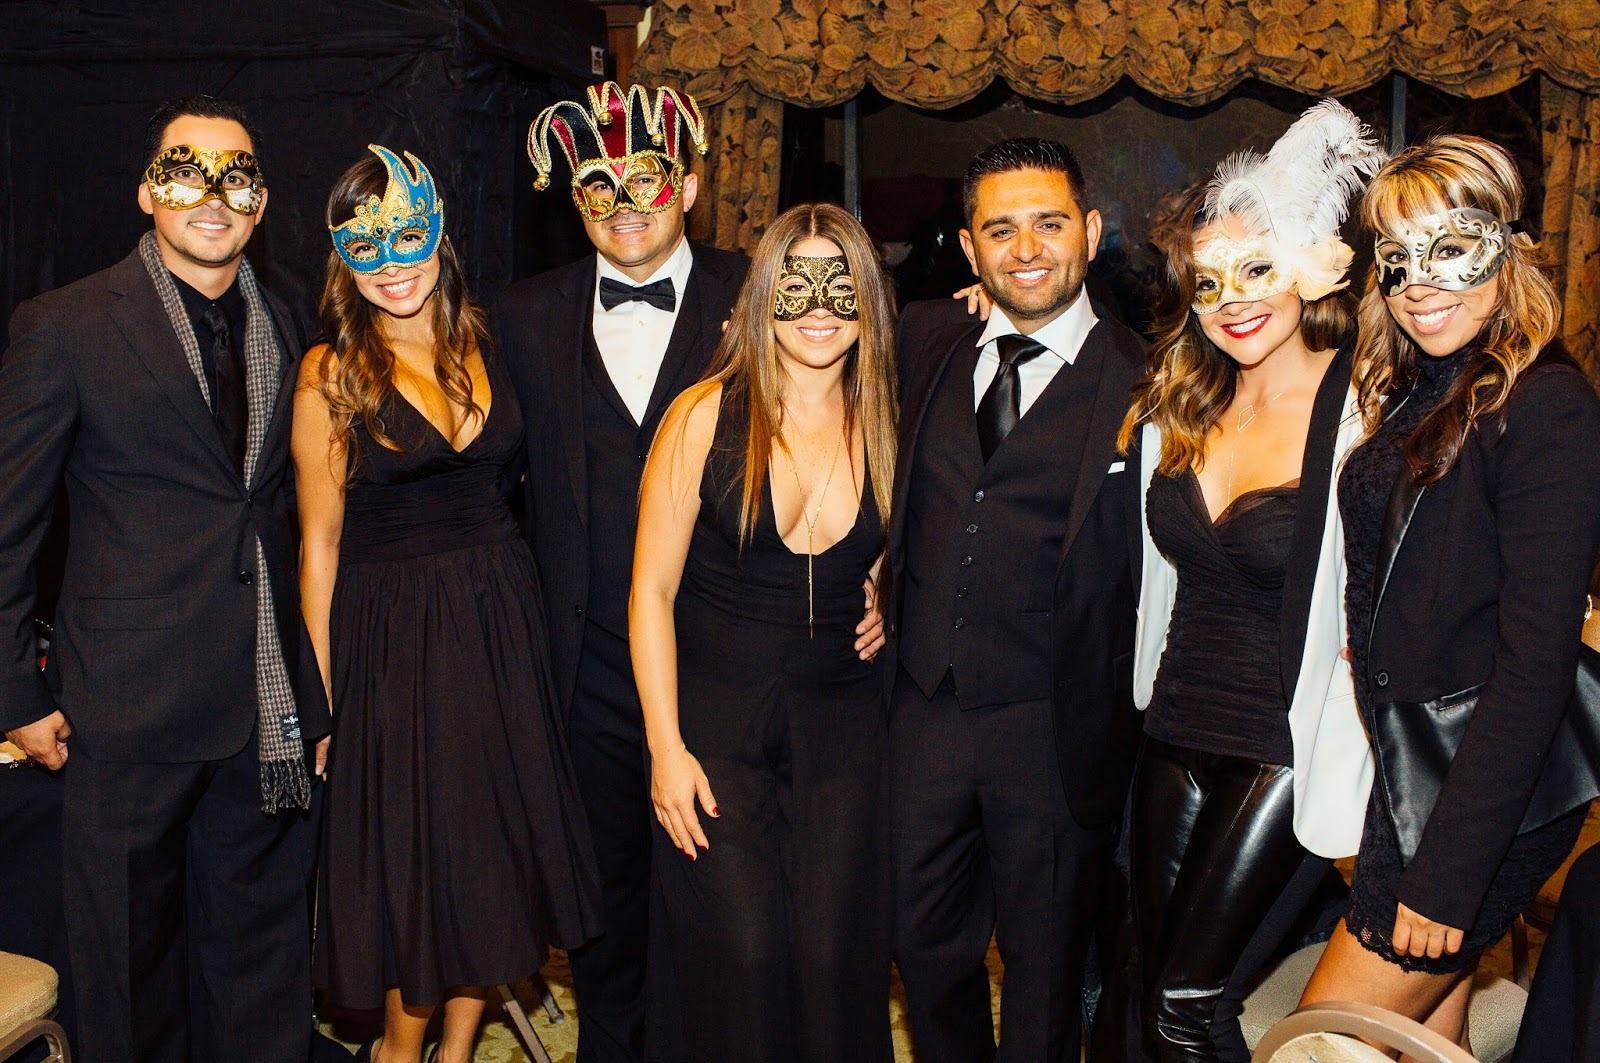 Masquerade Ball, Mask, Party Guests